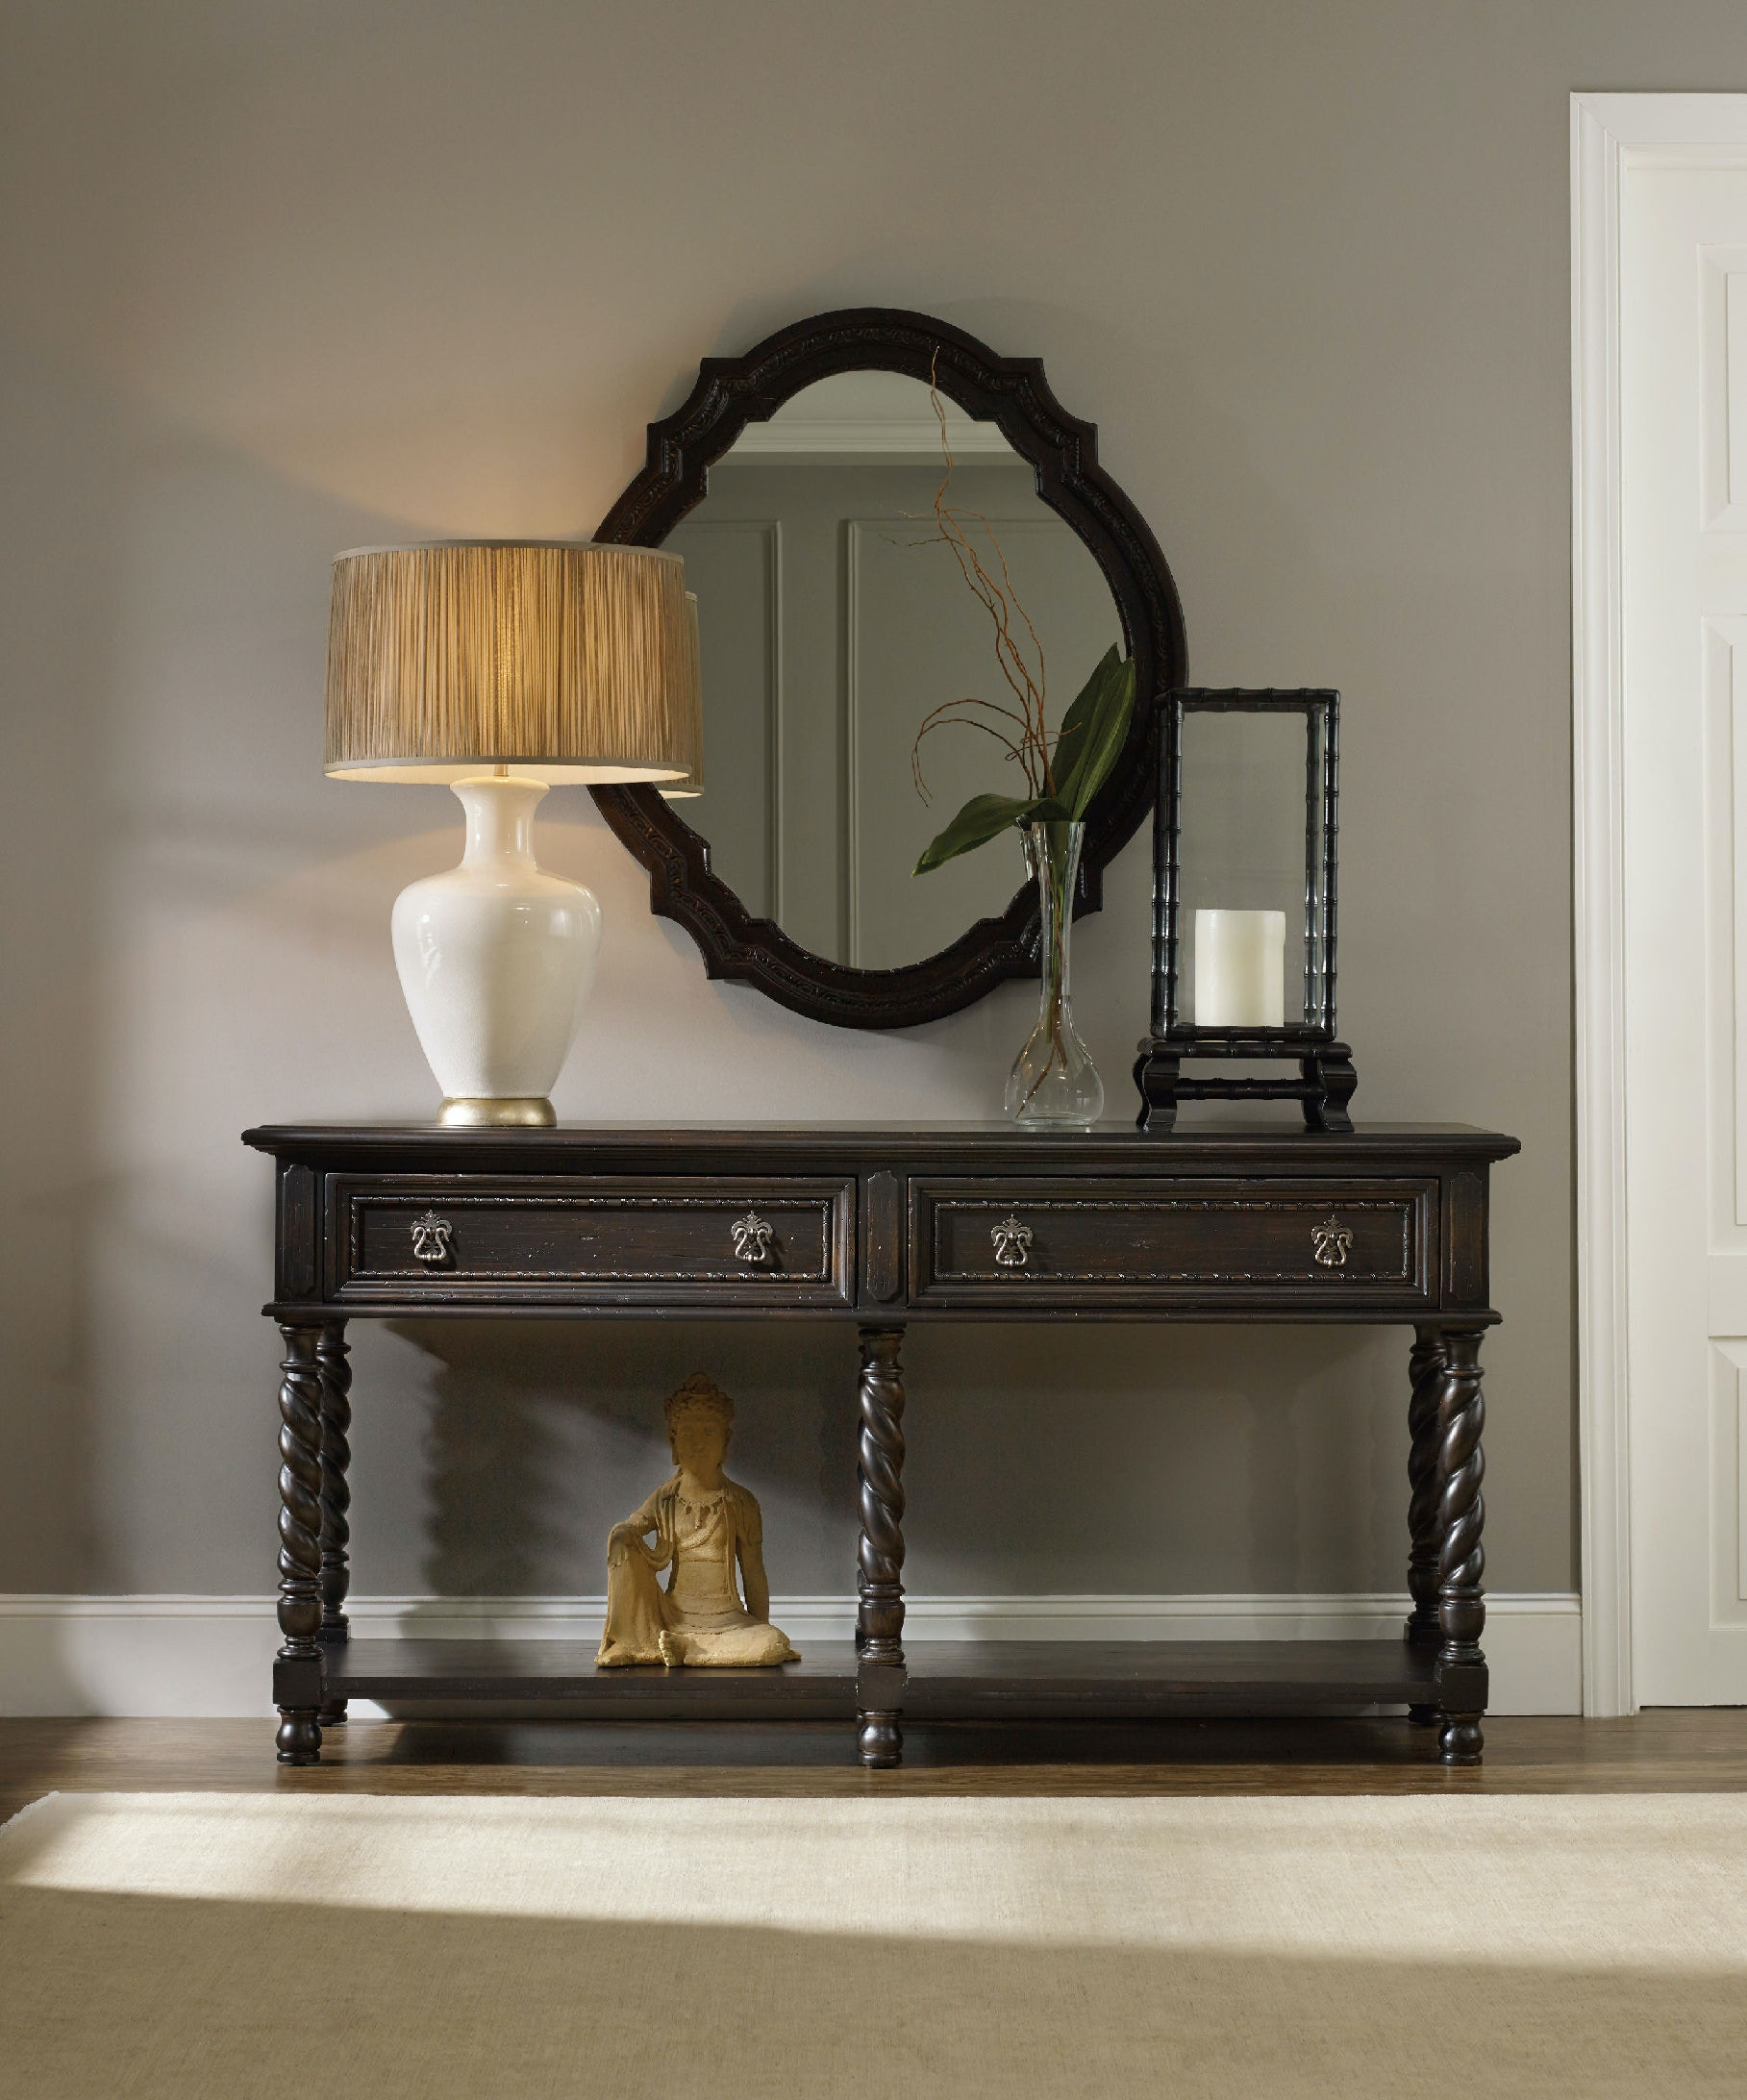 Hooker Furniture Treviso Accent Mirror 5374 90008